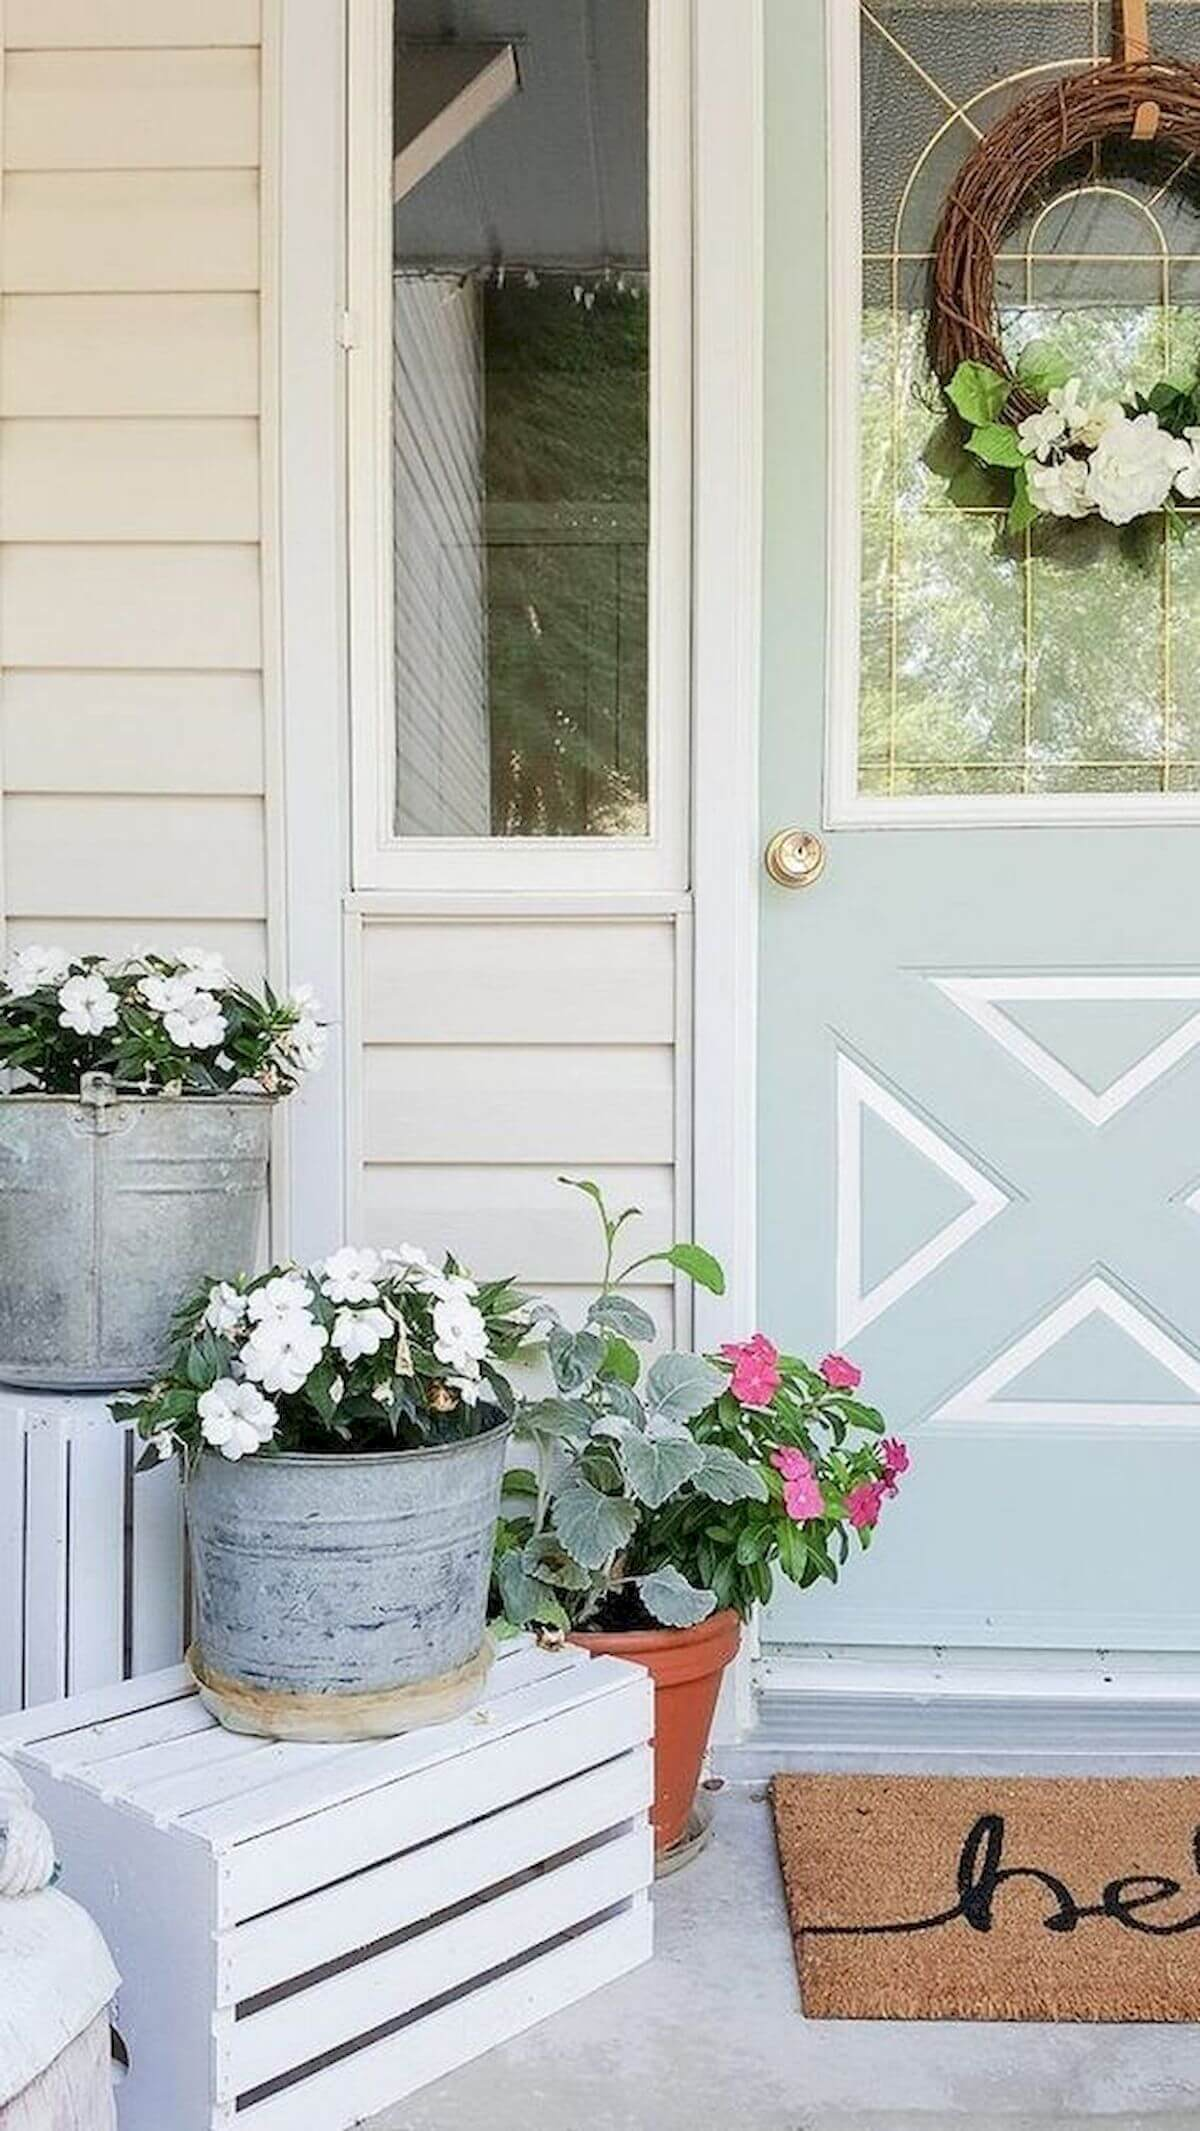 Cozy Up the Porch Corner with Crates and Planters